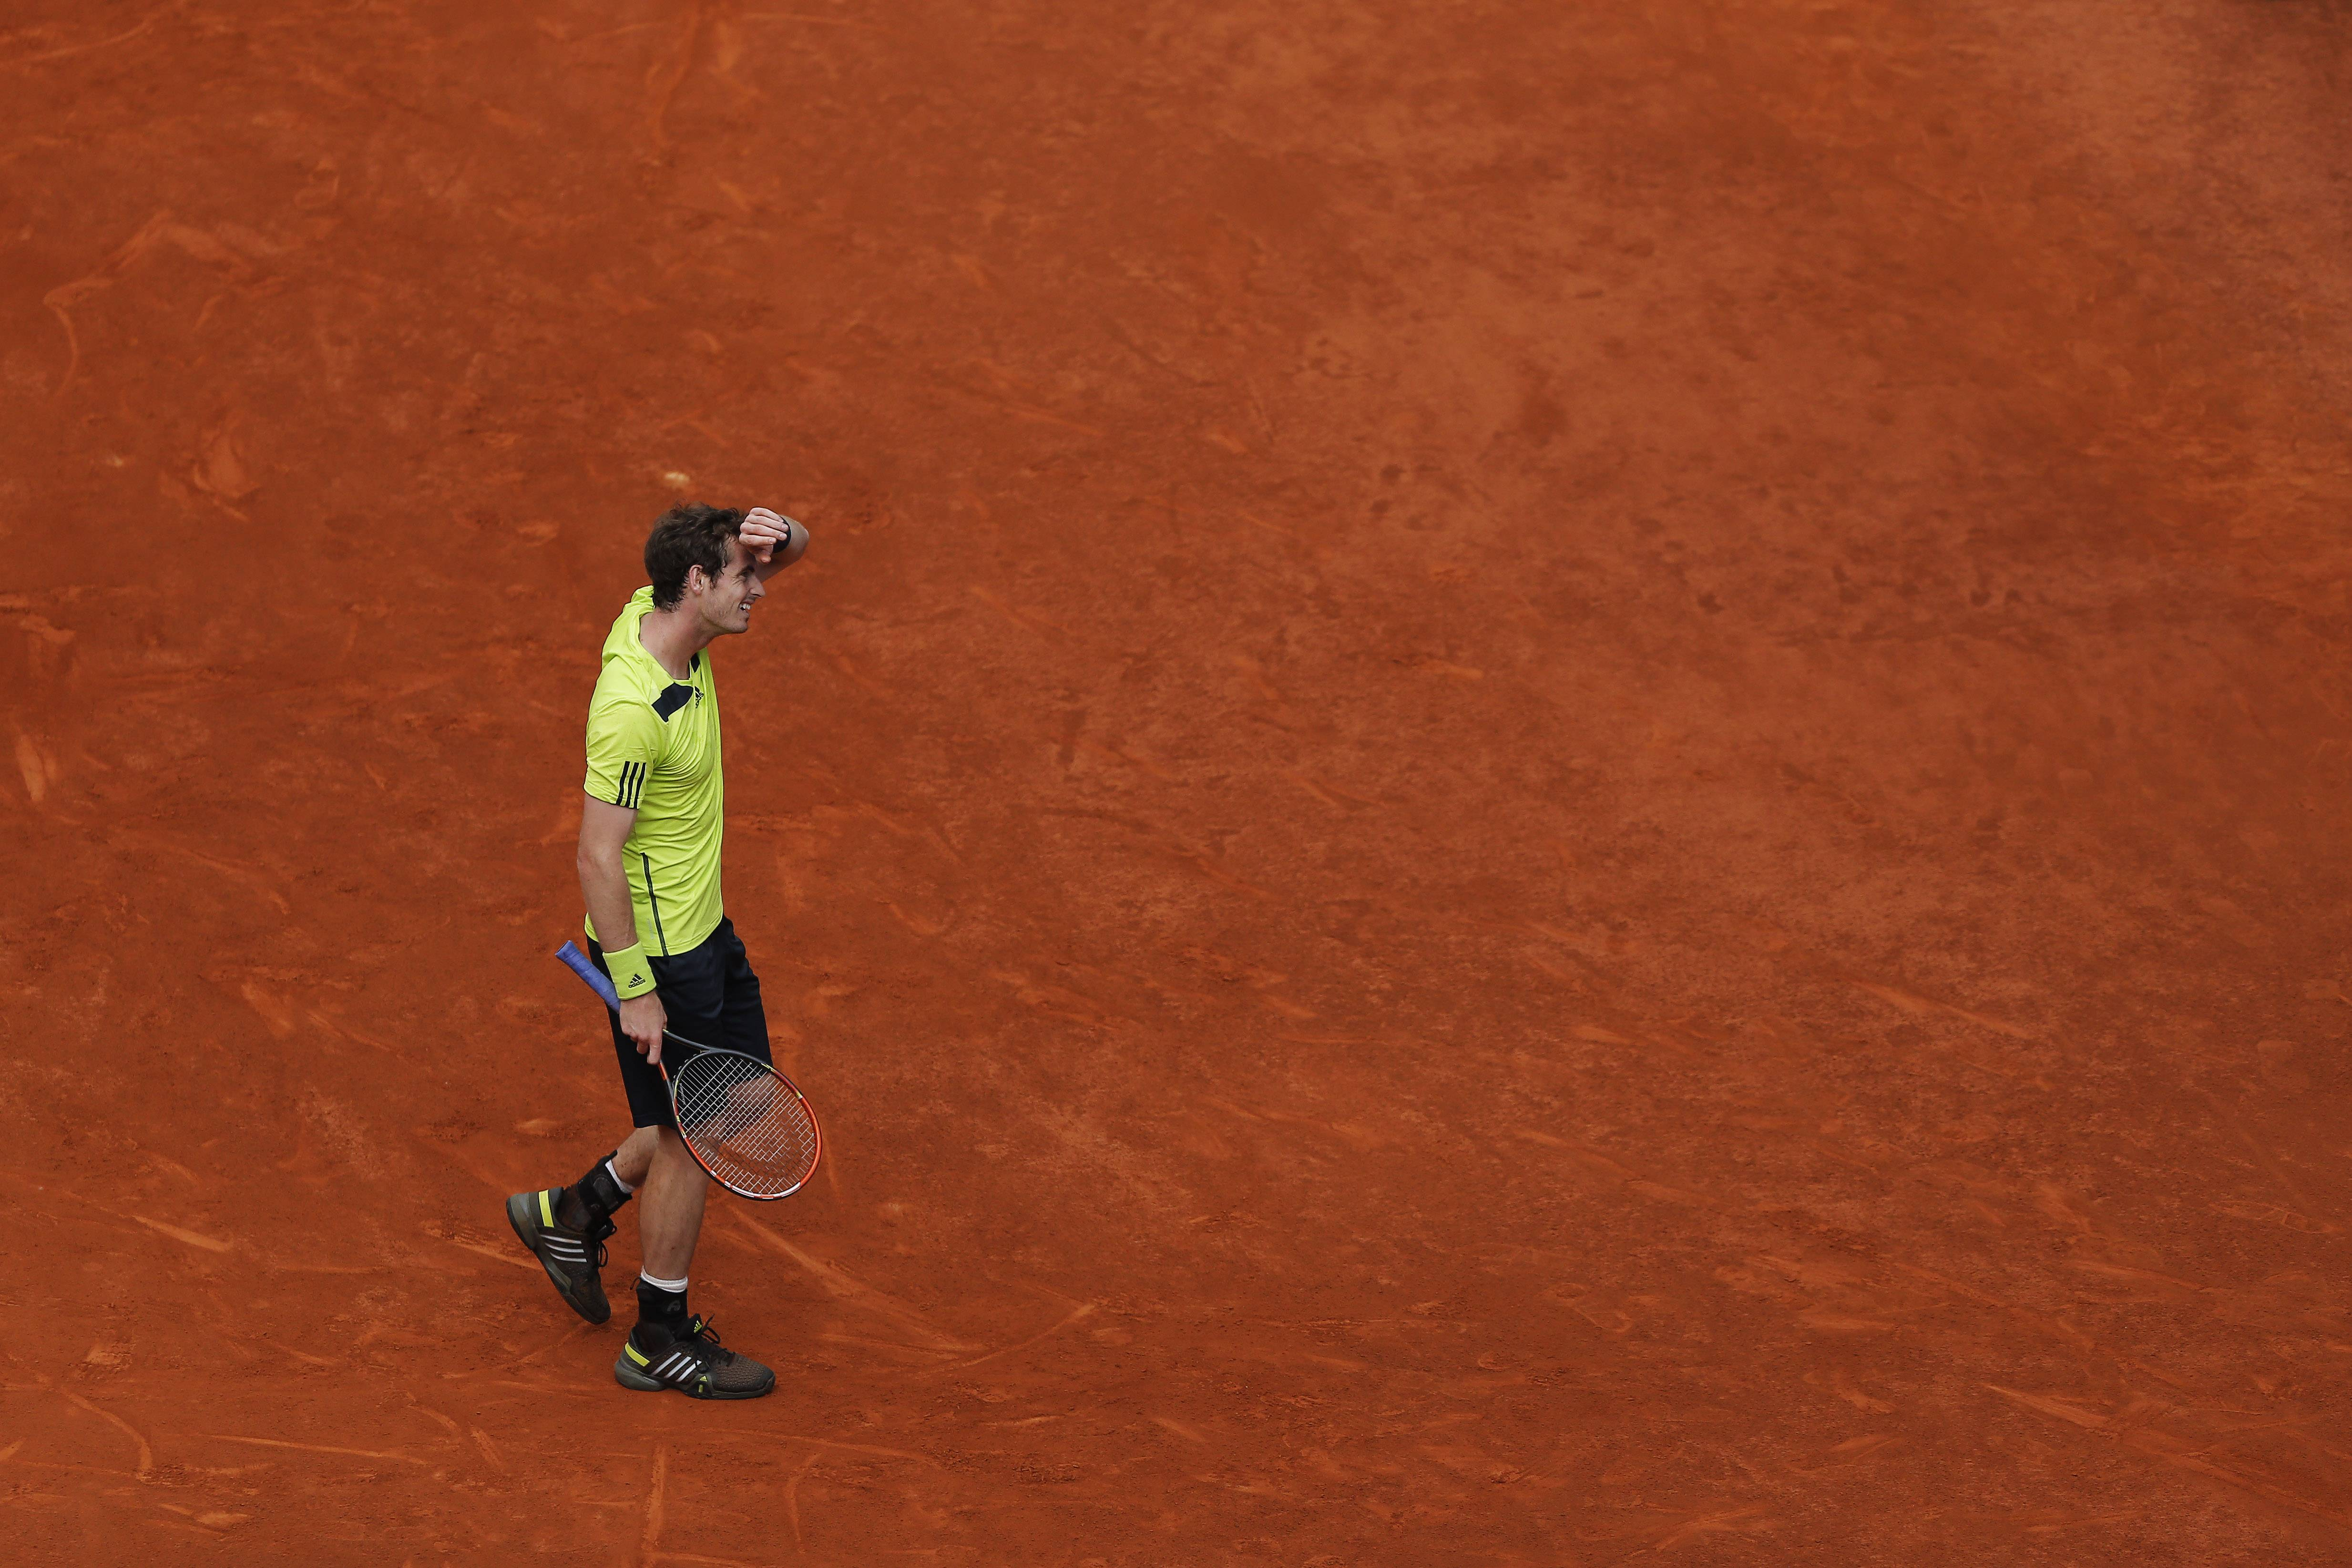 Andy Murray from Britain reacts during a Madrid Open tennis tournament match against Santiago Giraldo from Colombia in Madrid, Spain, Thursday, May 8, 2014.